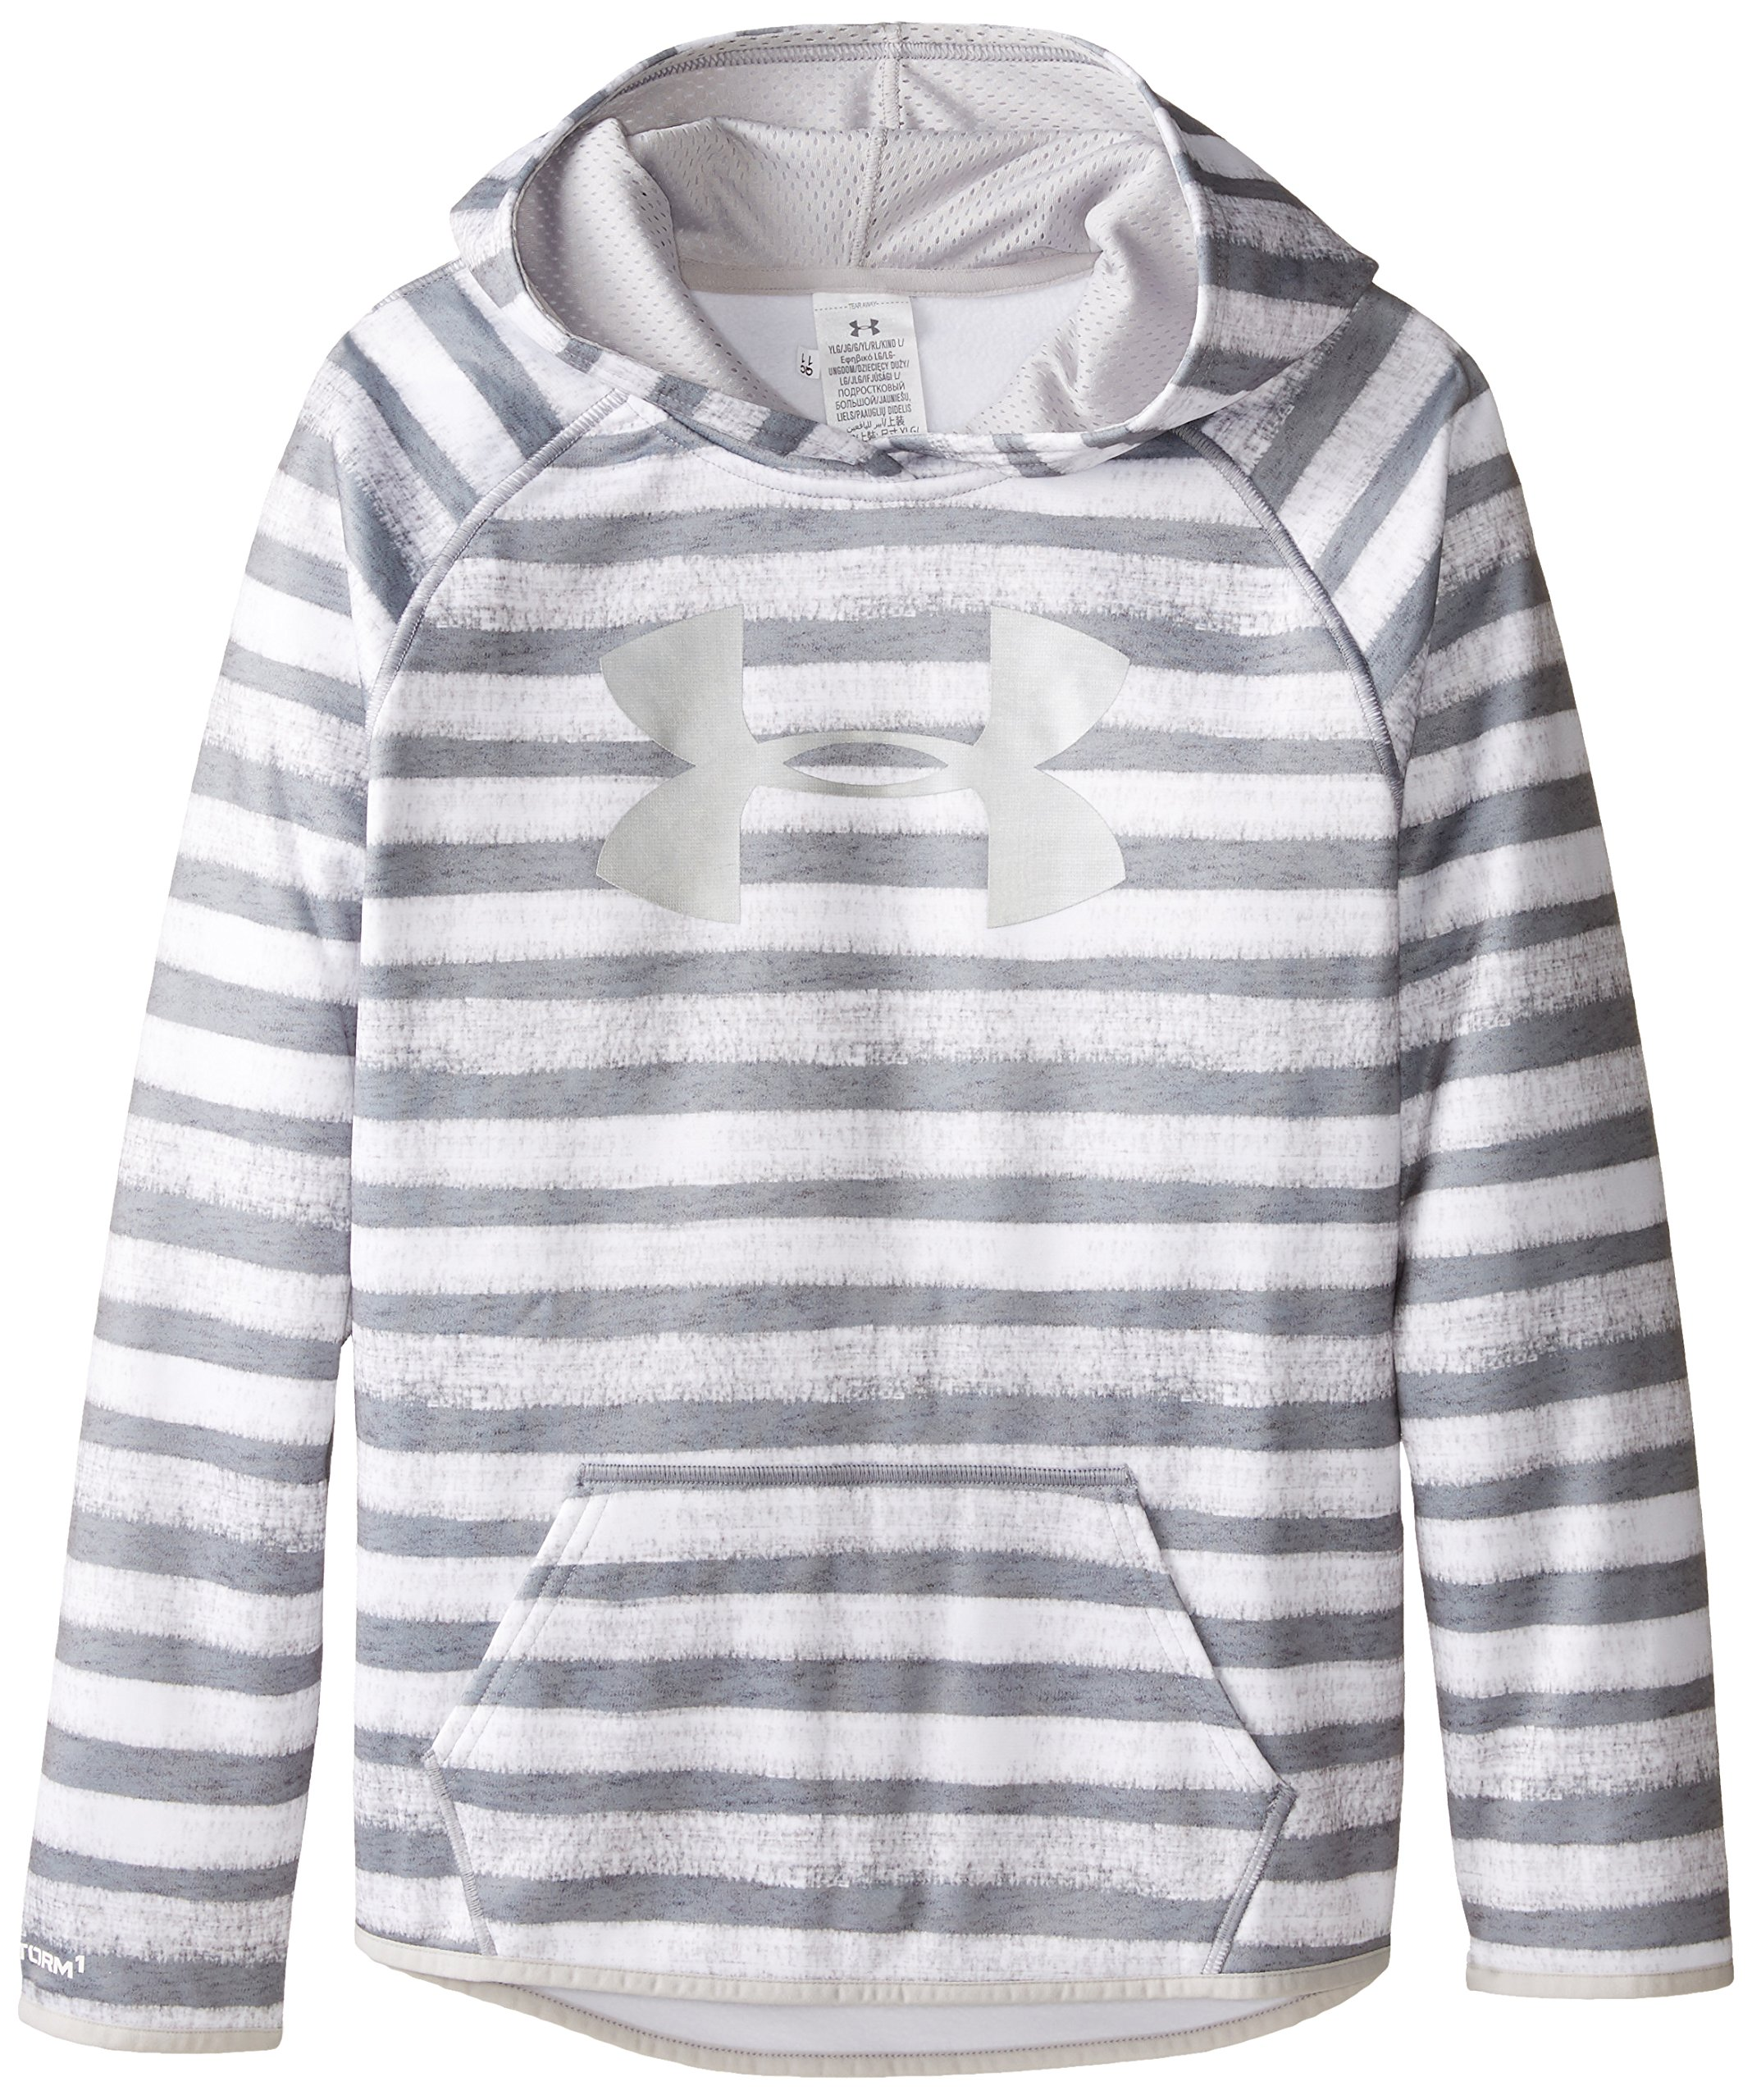 Under Armour Women's Armour Fleece Printed Big Logo Hoodie, True Gray Heather /Silver, Youth Small by Under Armour